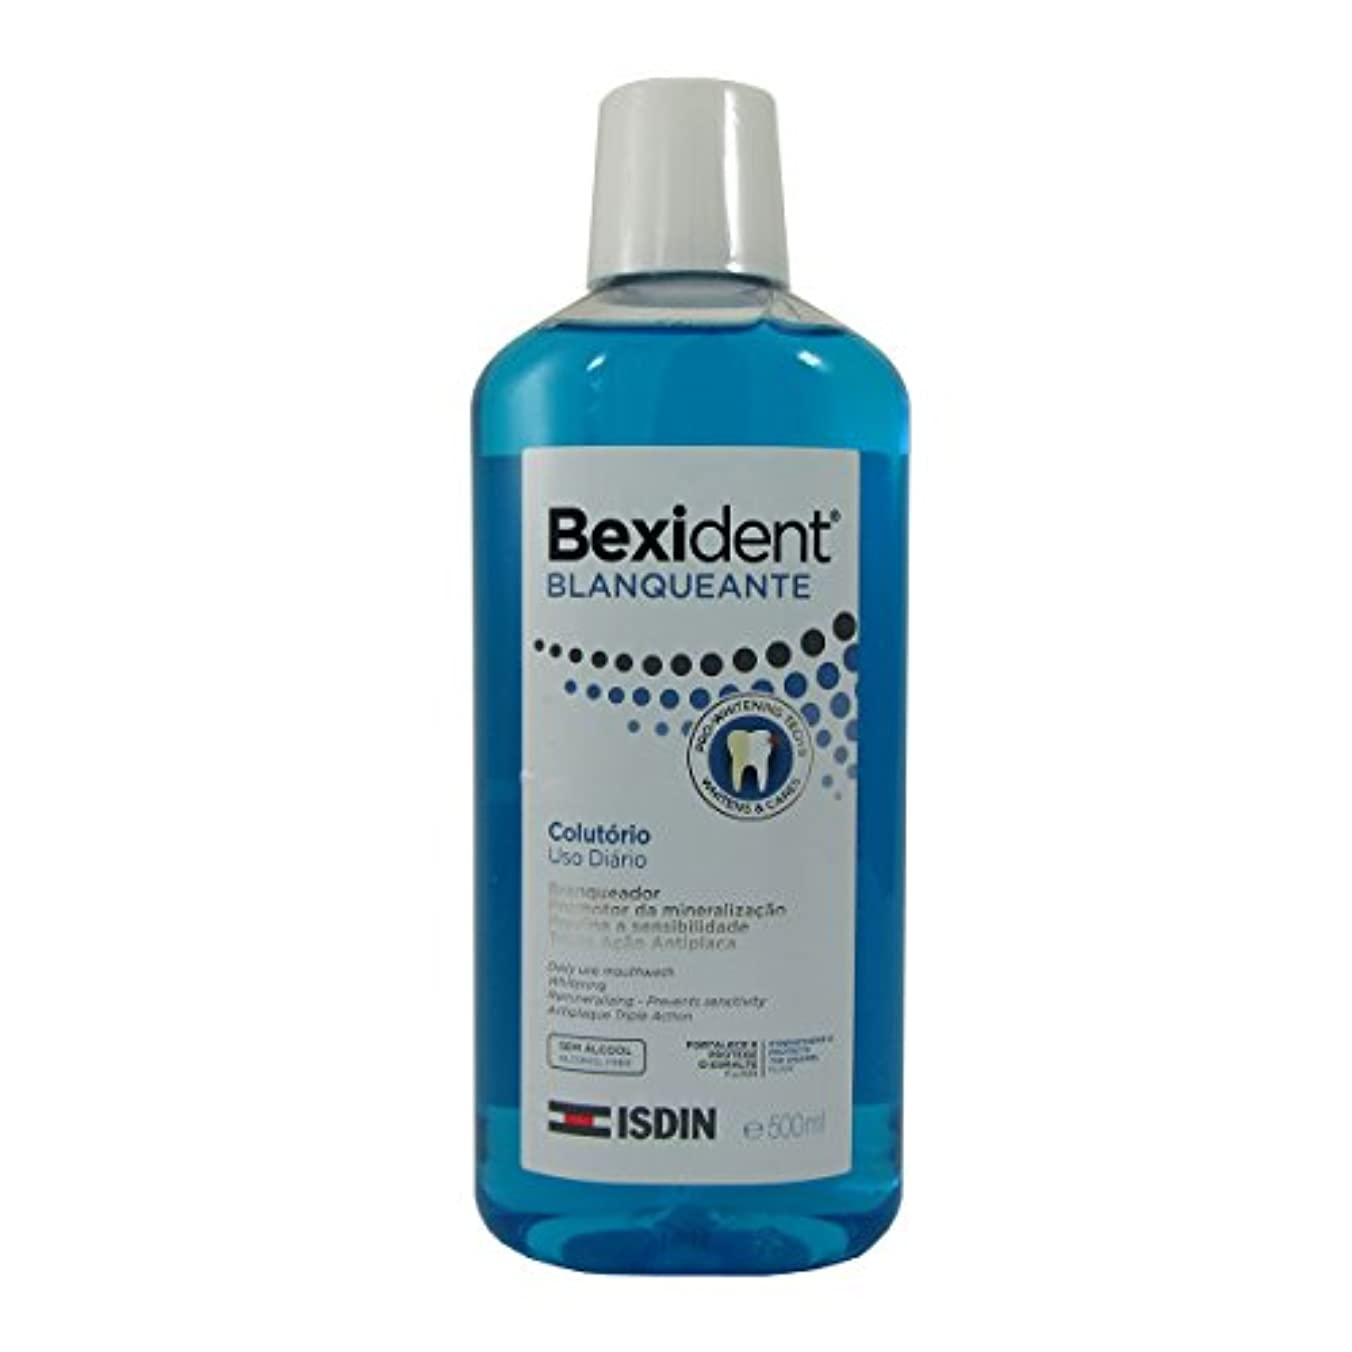 Bexident Whitening Mouthwash 500ml [並行輸入品]